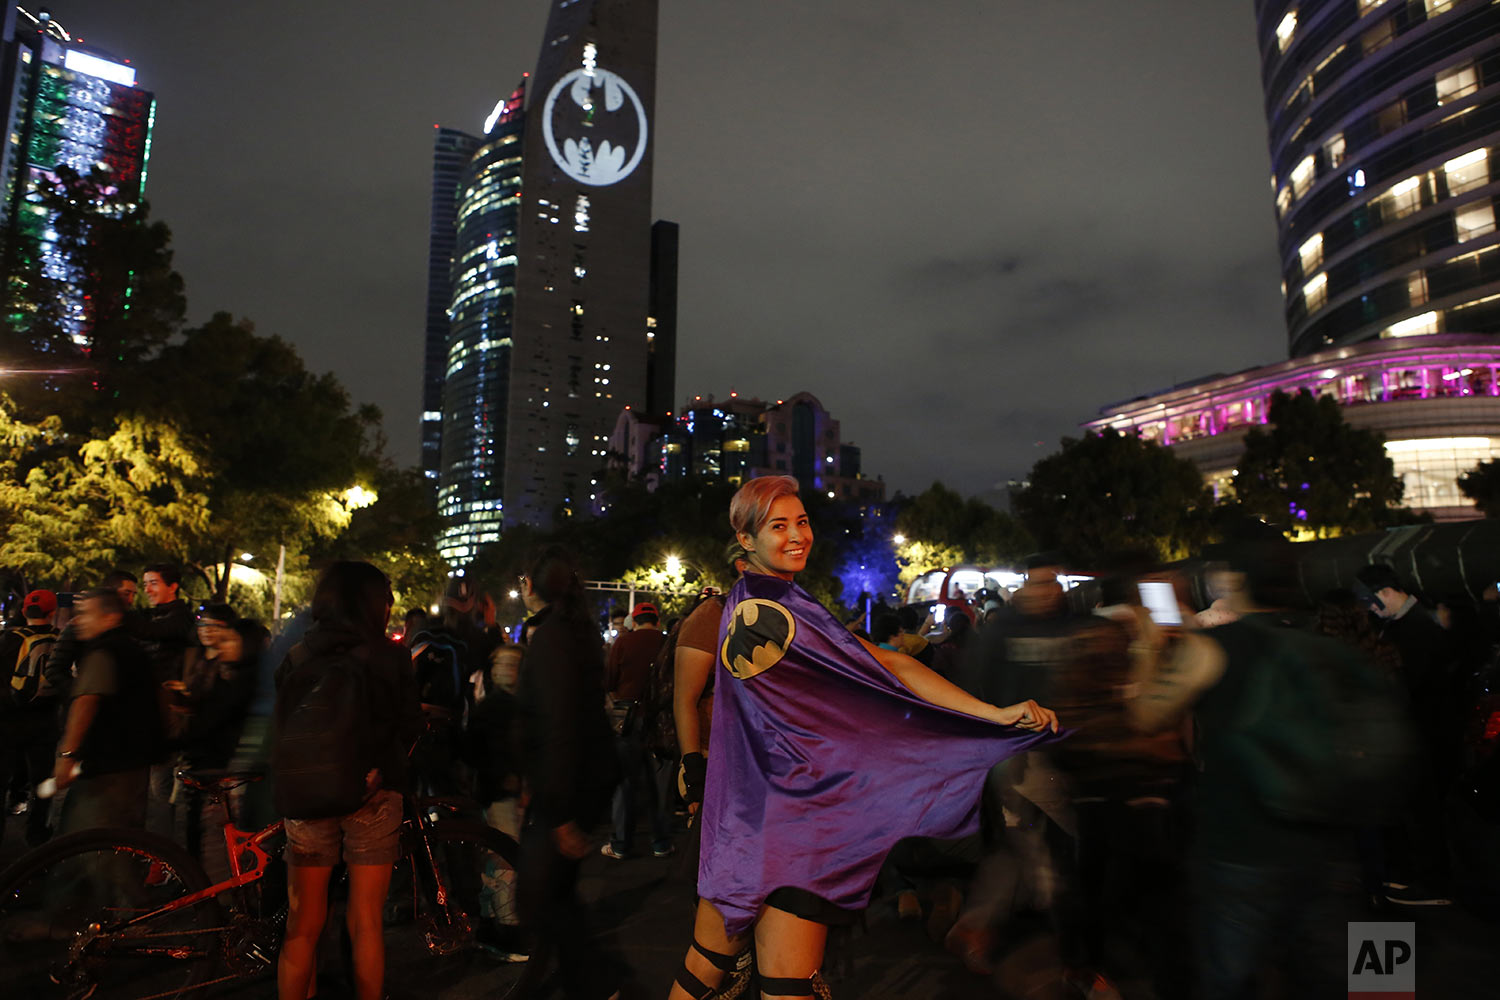 Stephanie Salgado poses with her cape during the lighting of a Bat-signal commemorating Batman's 80th anniversary in Mexico City, on Saturday, Sept. 21, 2019. (AP Photo/Ginnette Riquelme)